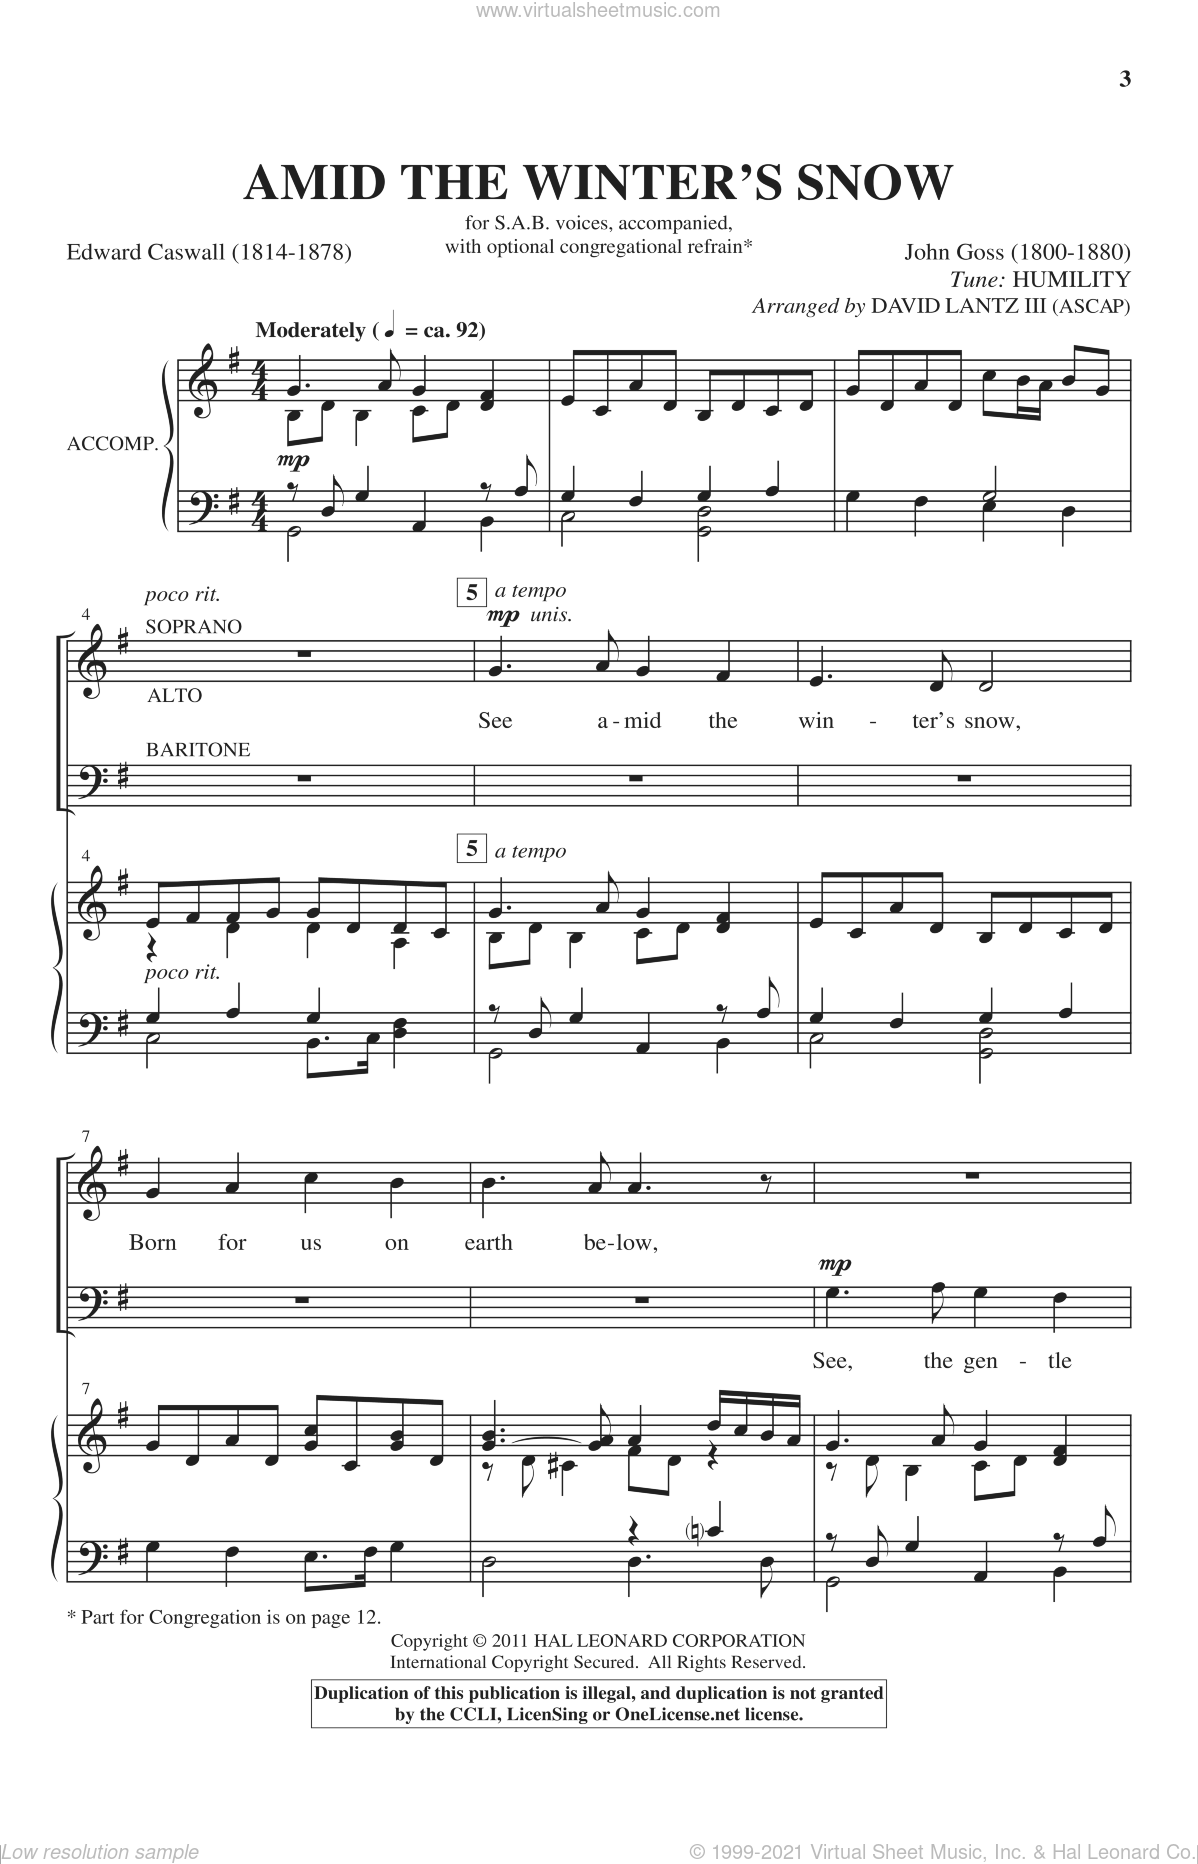 See Amid The Winter's Snow sheet music for choir (SAB) by Edward Caswall, John Goss and David Lanz, Christmas carol score, intermediate choir (SAB). Score Image Preview.